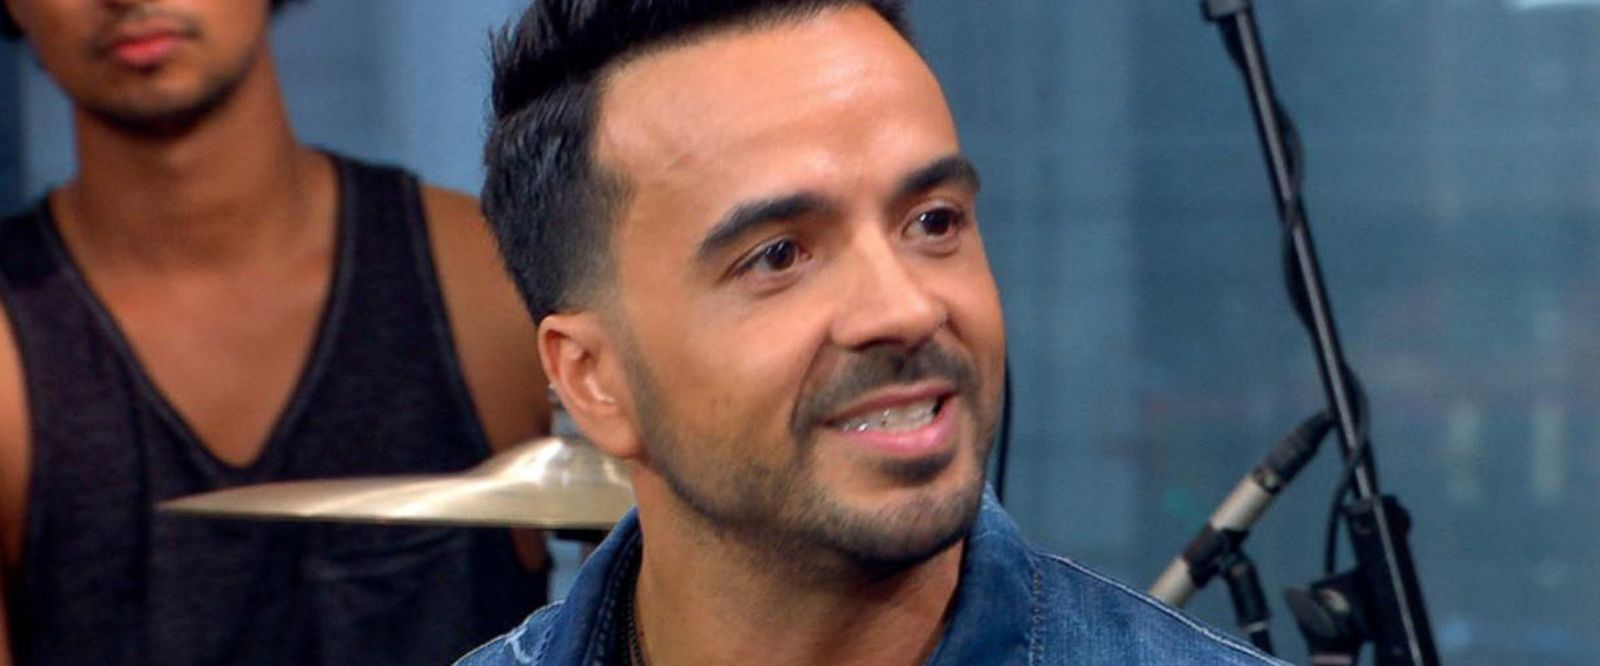 VIDEO: 'GMA' Hot List: Luis Fonsi reveals how he came up with the lyrics for 'Despacito'